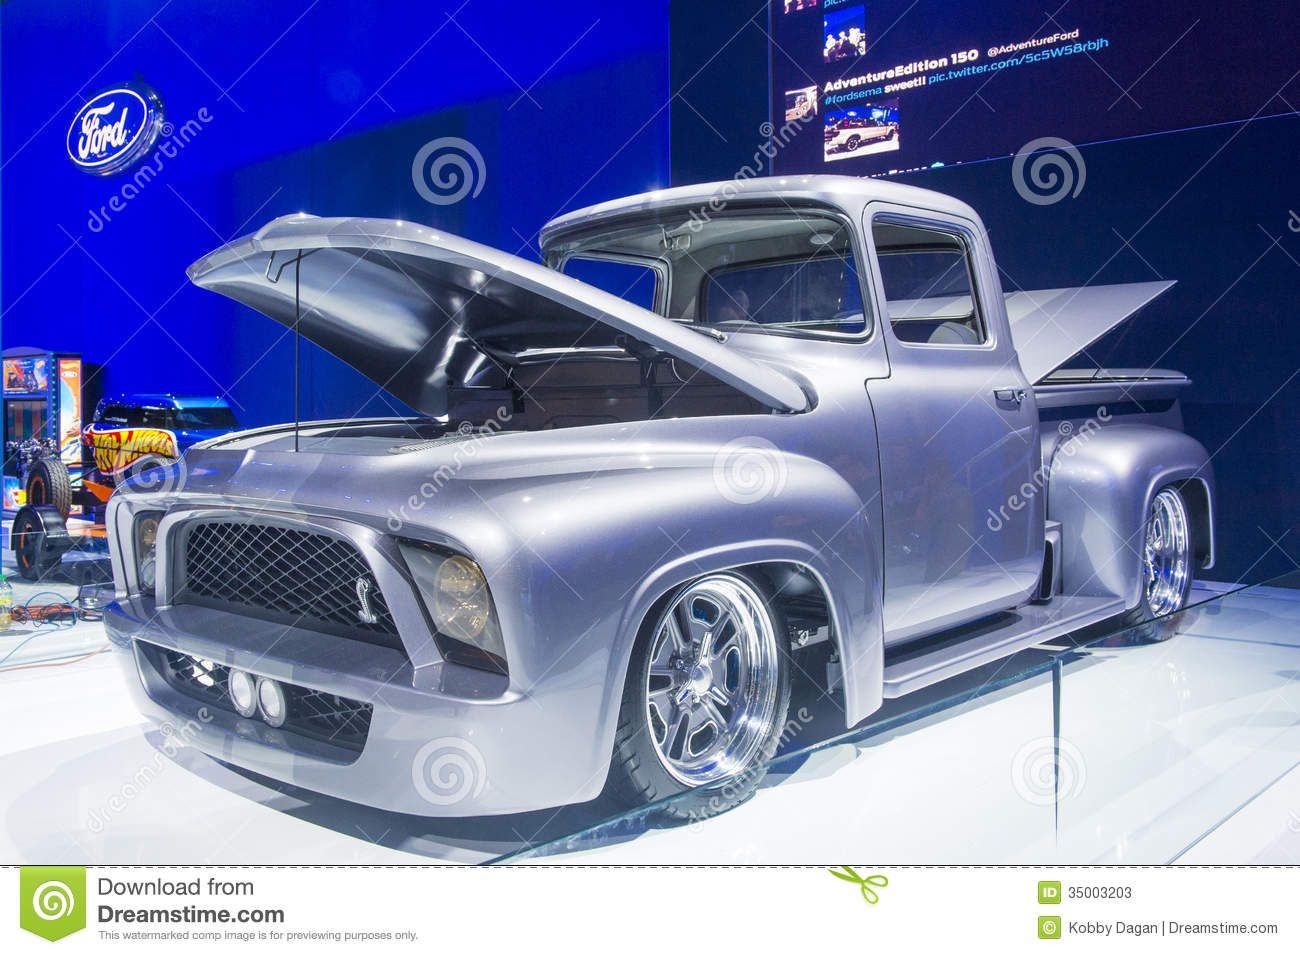 Best 25+ Sema car show ideas on Pinterest   Ford mustang models ...